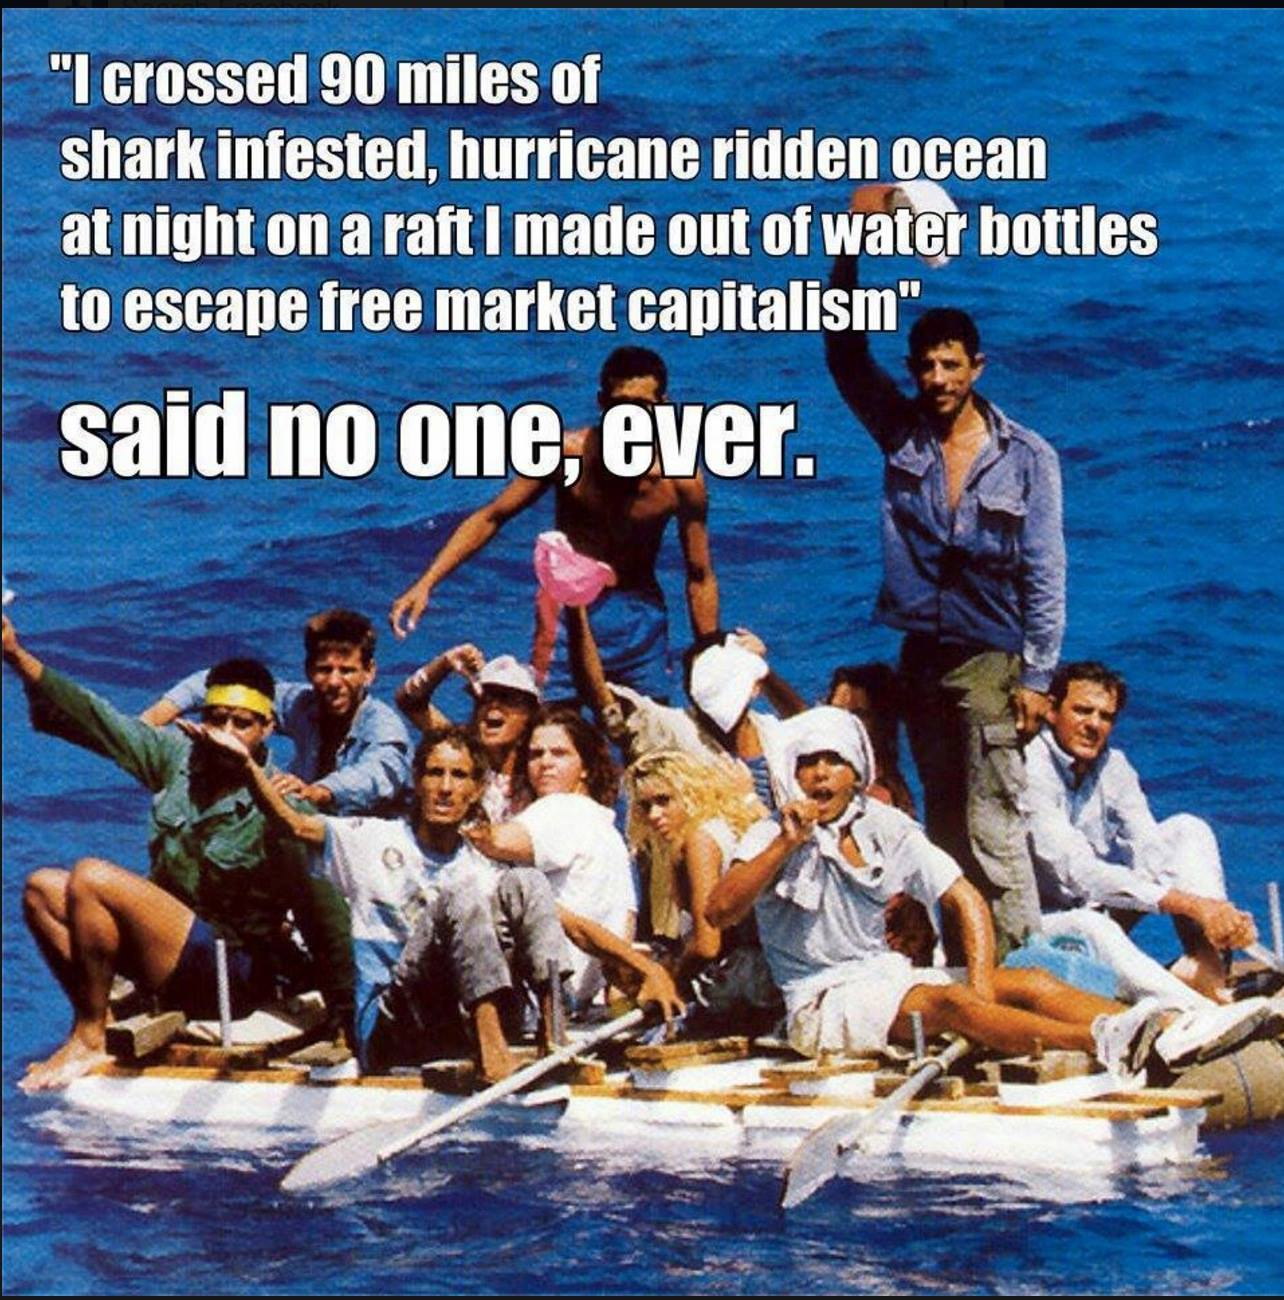 i-crossed-90-miles-of-shark-infested-hurricane-ridden-ocean-at-night-on-a-raft-i-made-out-of-water-bottles-to-escape-free-market-capitalism